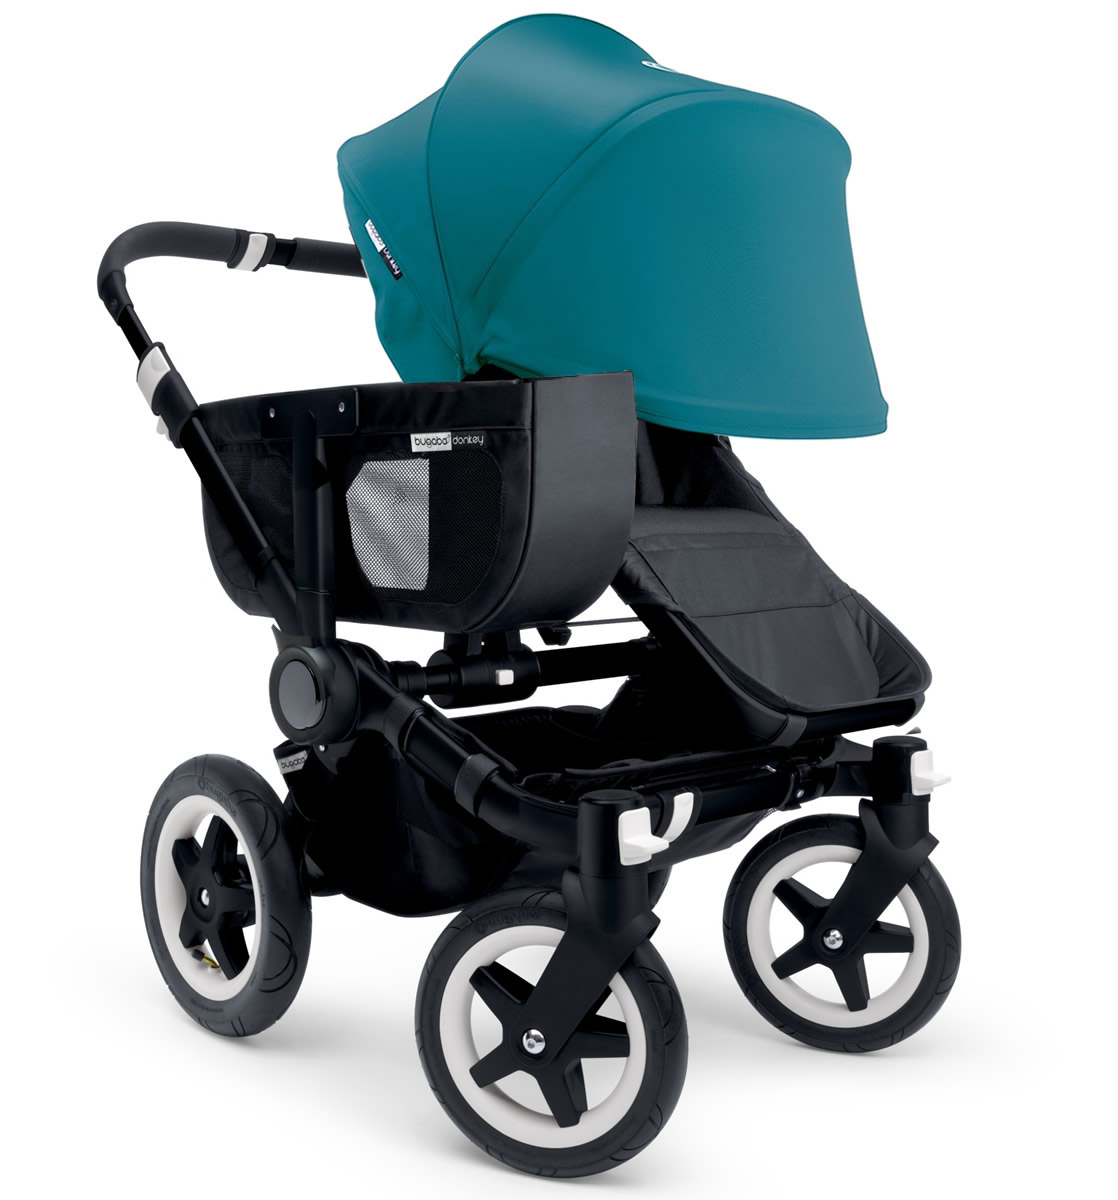 Bugaboo Donkey Mono Stroller, Extendable Canopy - 2015 - All Black/Petrol Blue